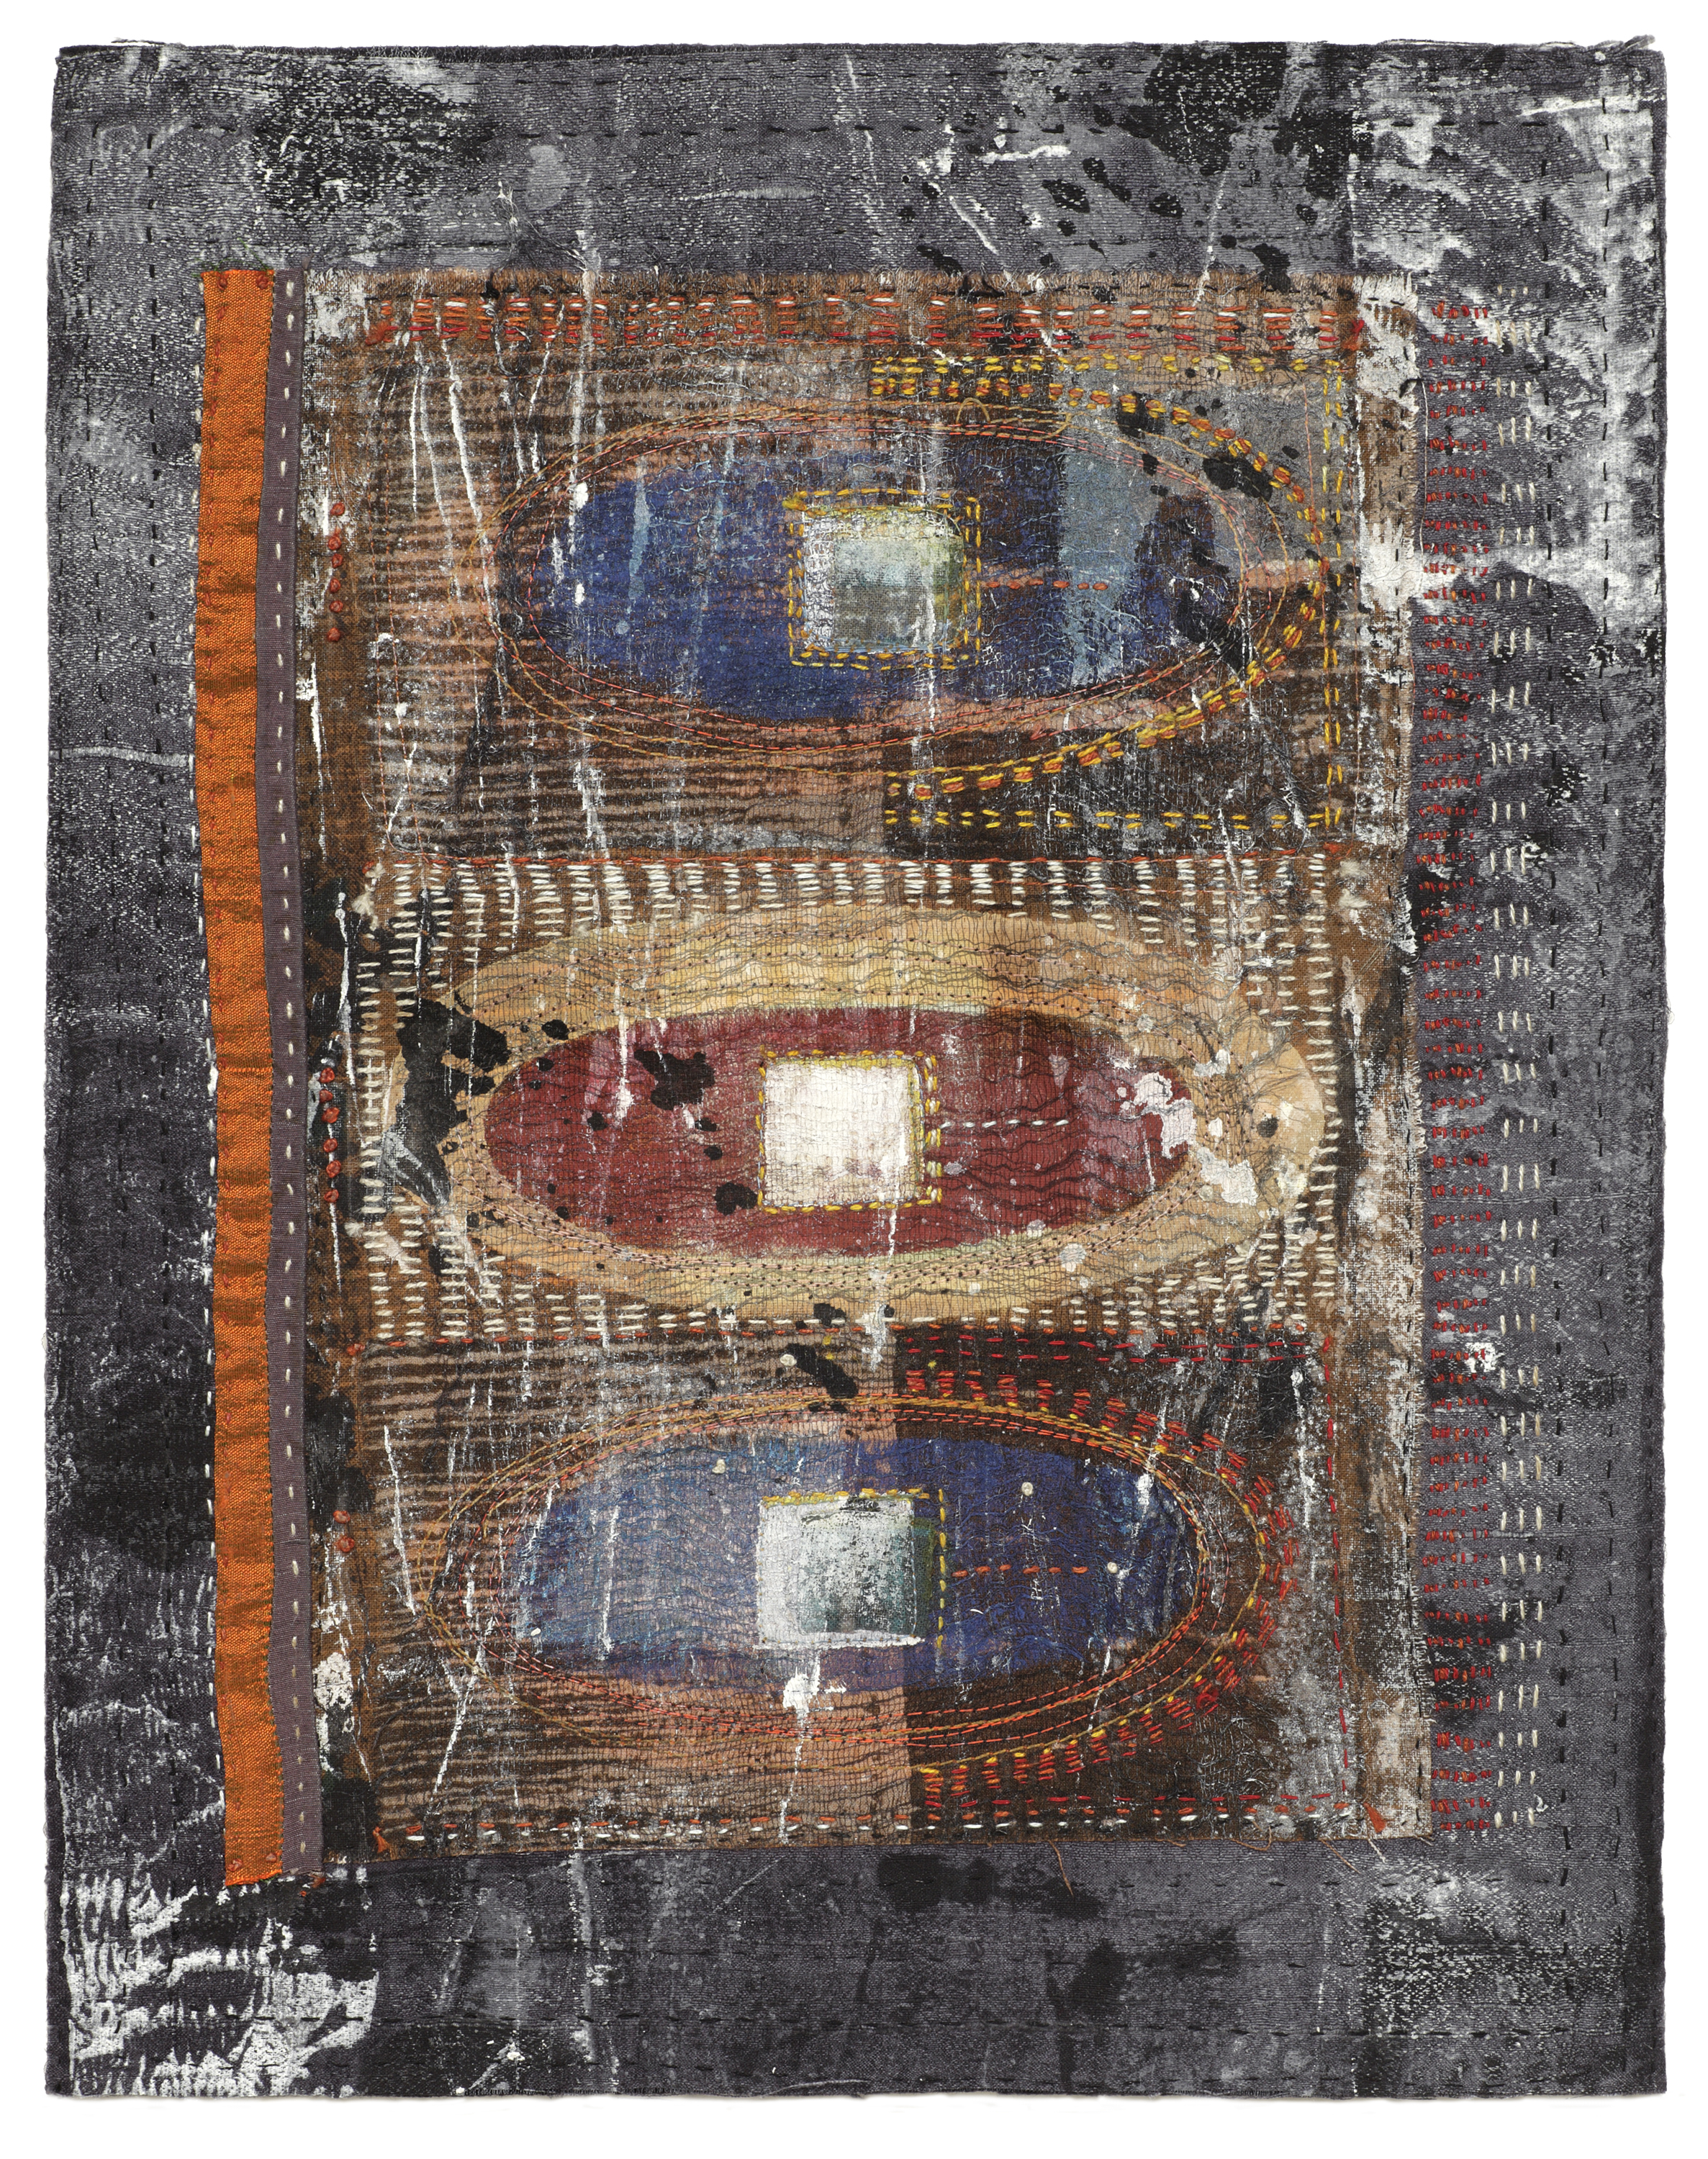 Assemblage 1  13x10 inches